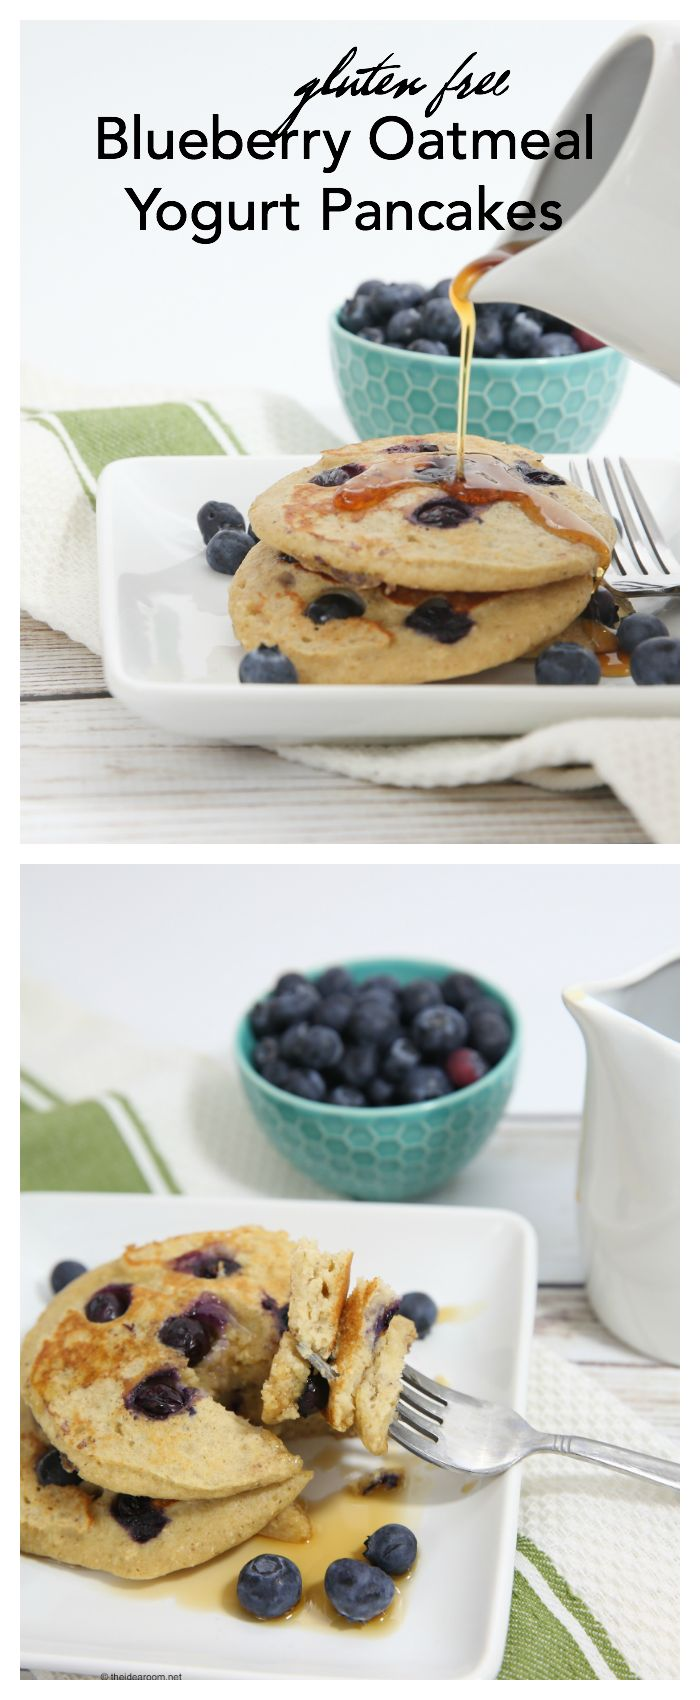 Recipes | Pancakes | These Gluten Free Blueberry Oatmeal Yogurt Pancakes are a gluten free pancake high in protein for a delicious, healthier breakfast!